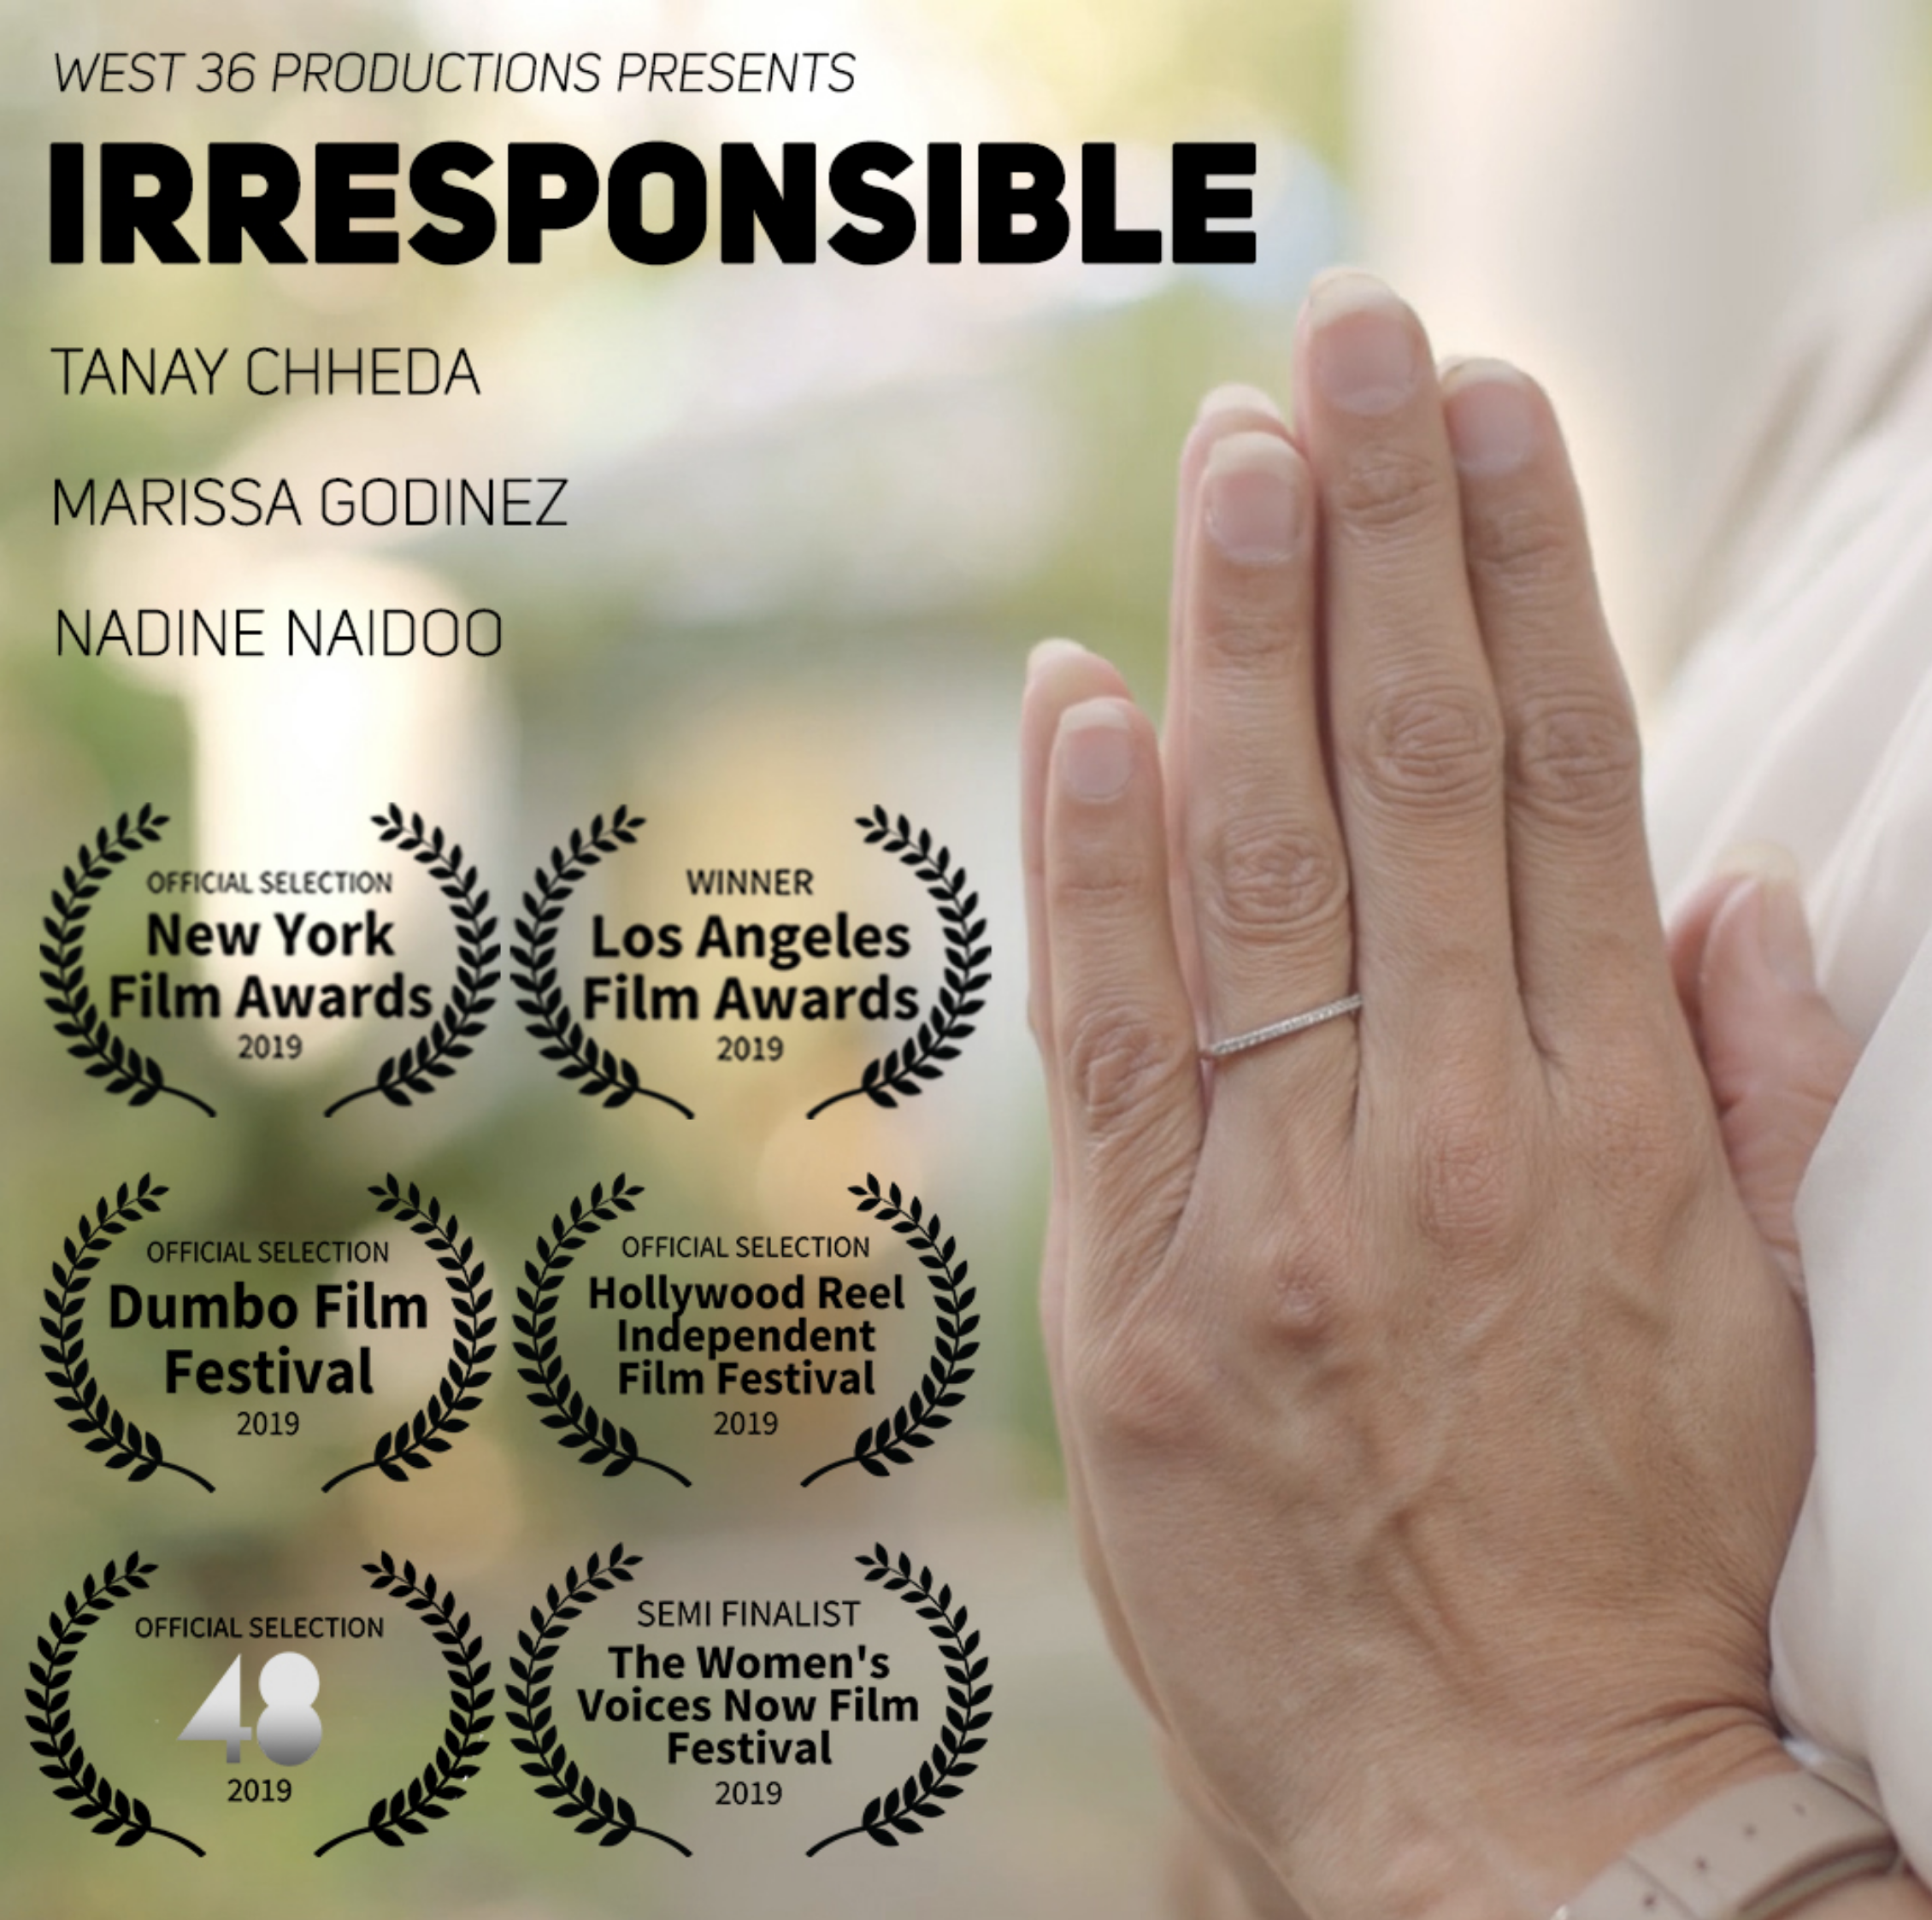 Irresponsible (2019) - Winner of the LA and NY Film Awards, along with US and international selections, Irresponsible is about a poet, and an ambitious pop star who challenge each other on contemporary feminism. What starts as a polar confrontation transforms into a journey of self discovery. Rohit's childhood upbringing and tumultuous relationship with his single mom put him on the cross roads of commerce and art.Watch on Amazon Prime Video ➝